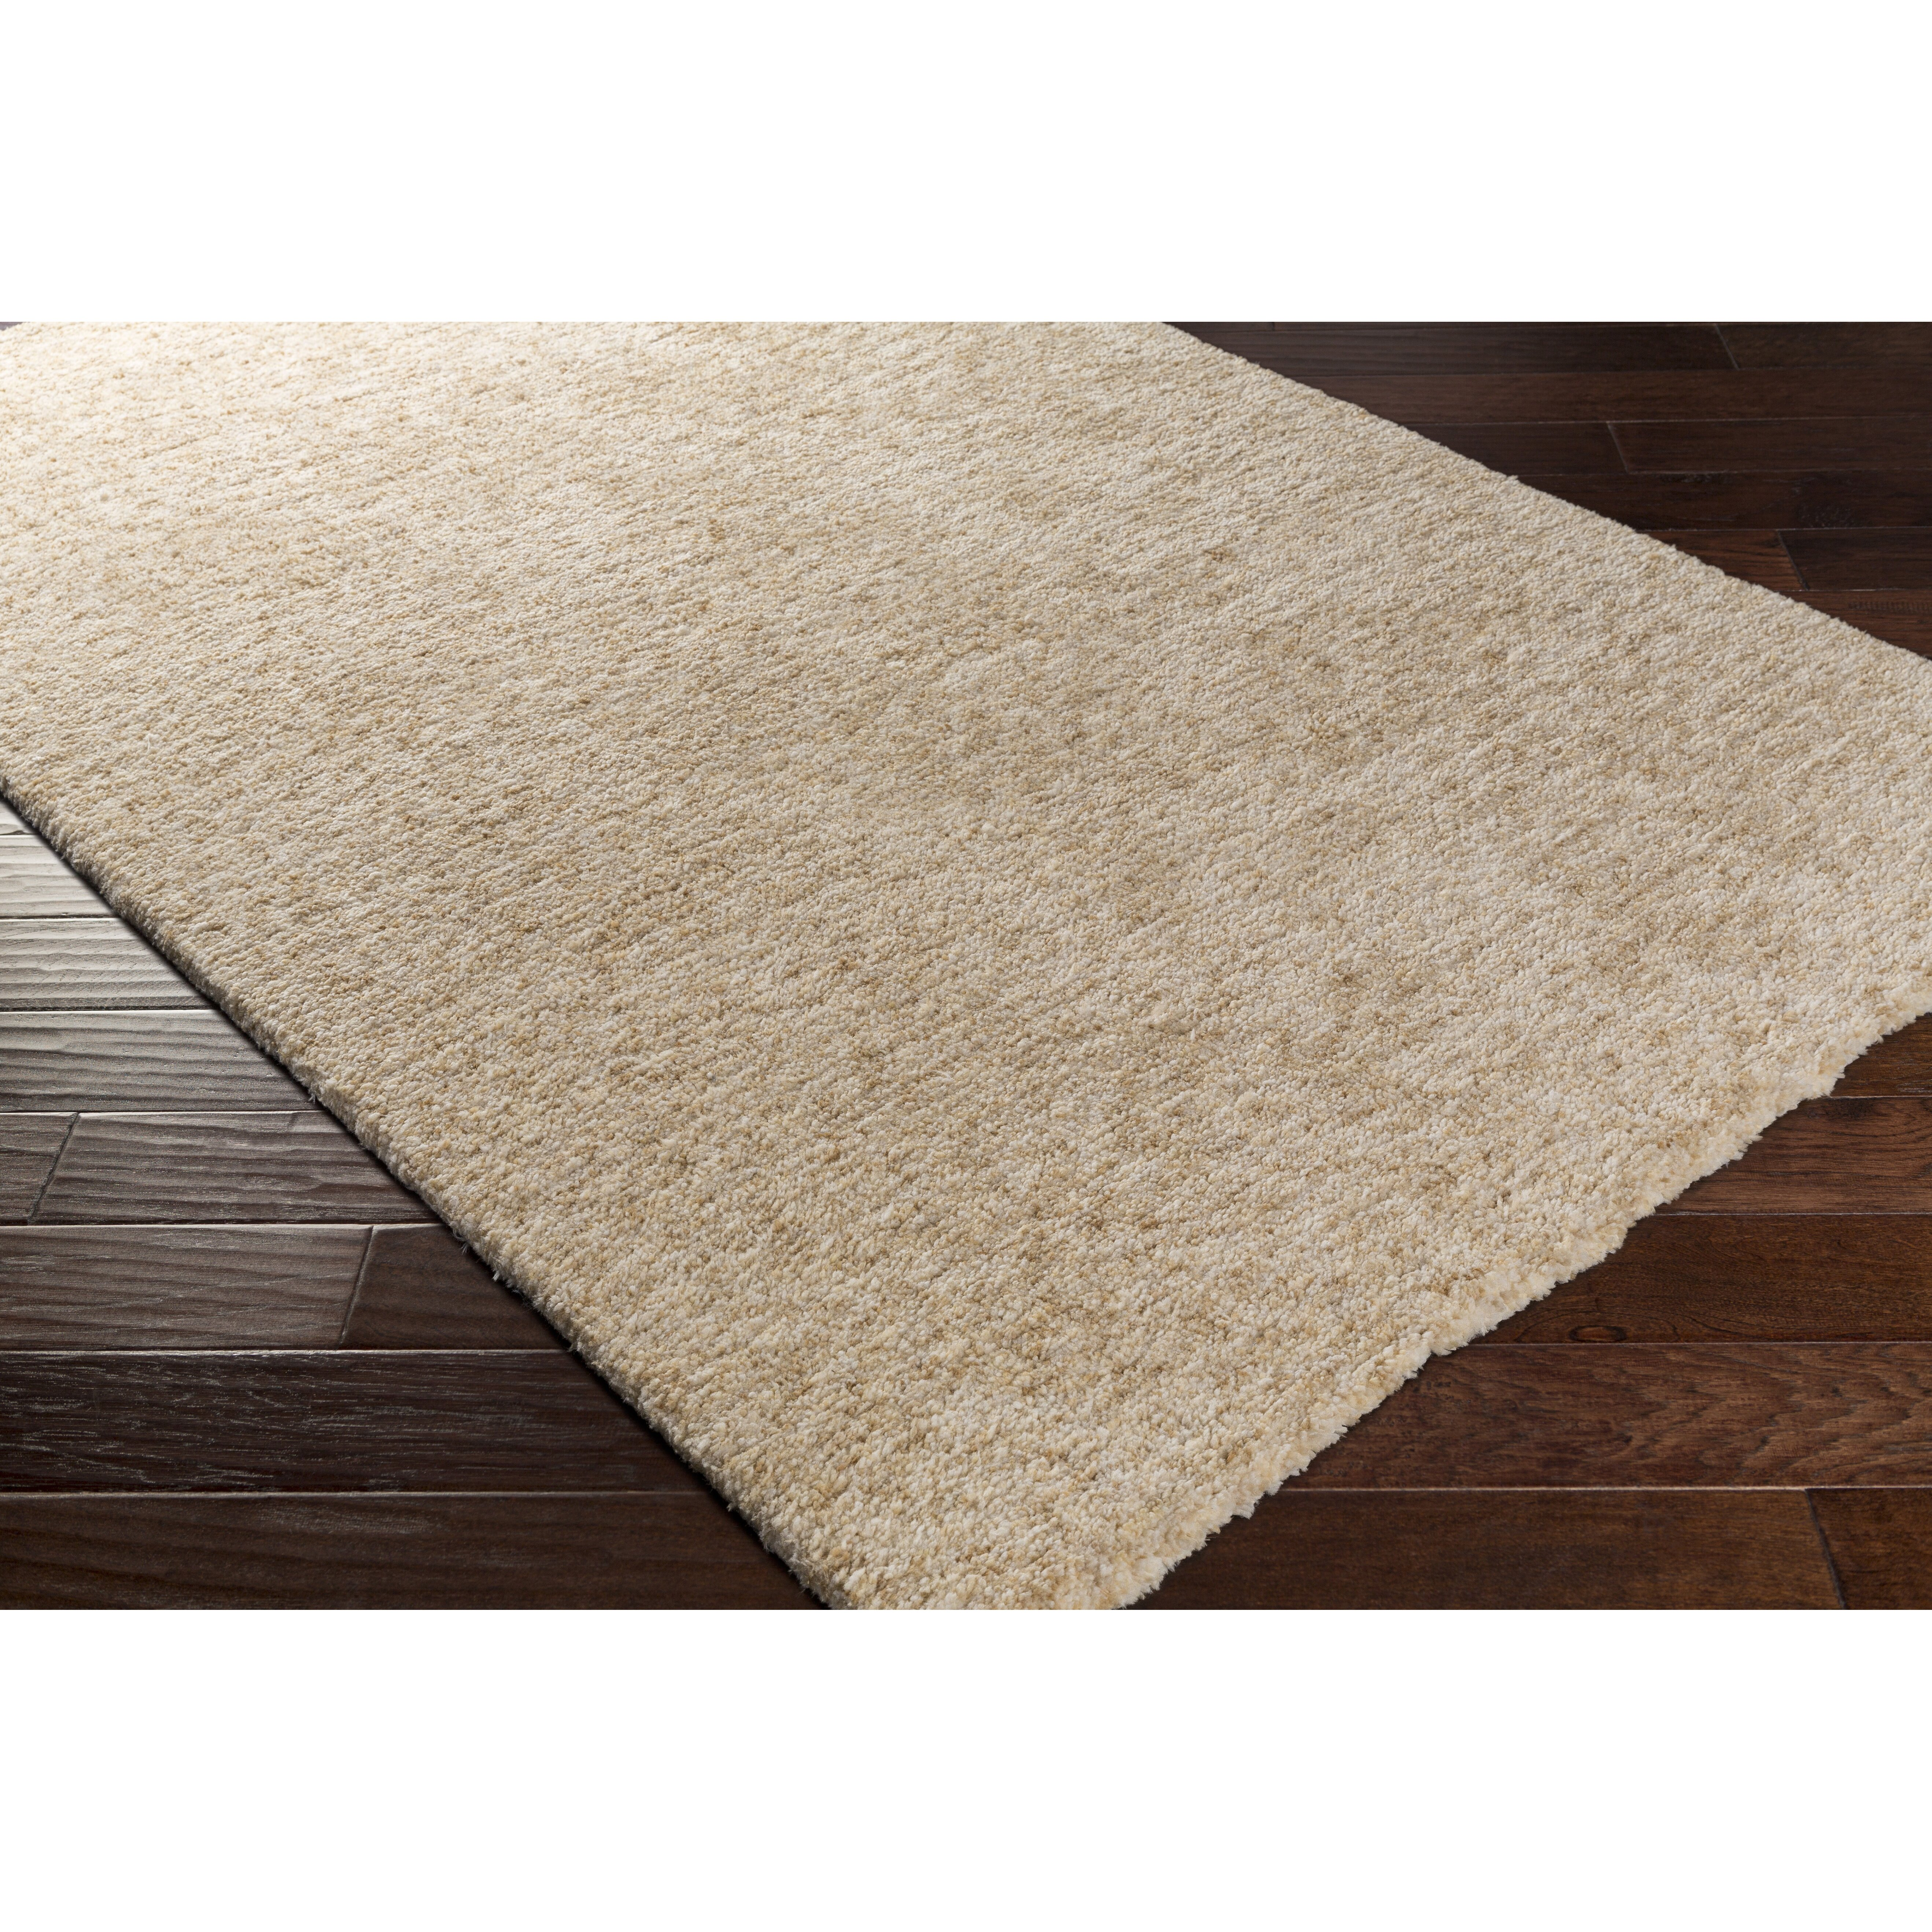 Artistic Weavers Sally Maise Tan Beige Area Rug Amp Reviews